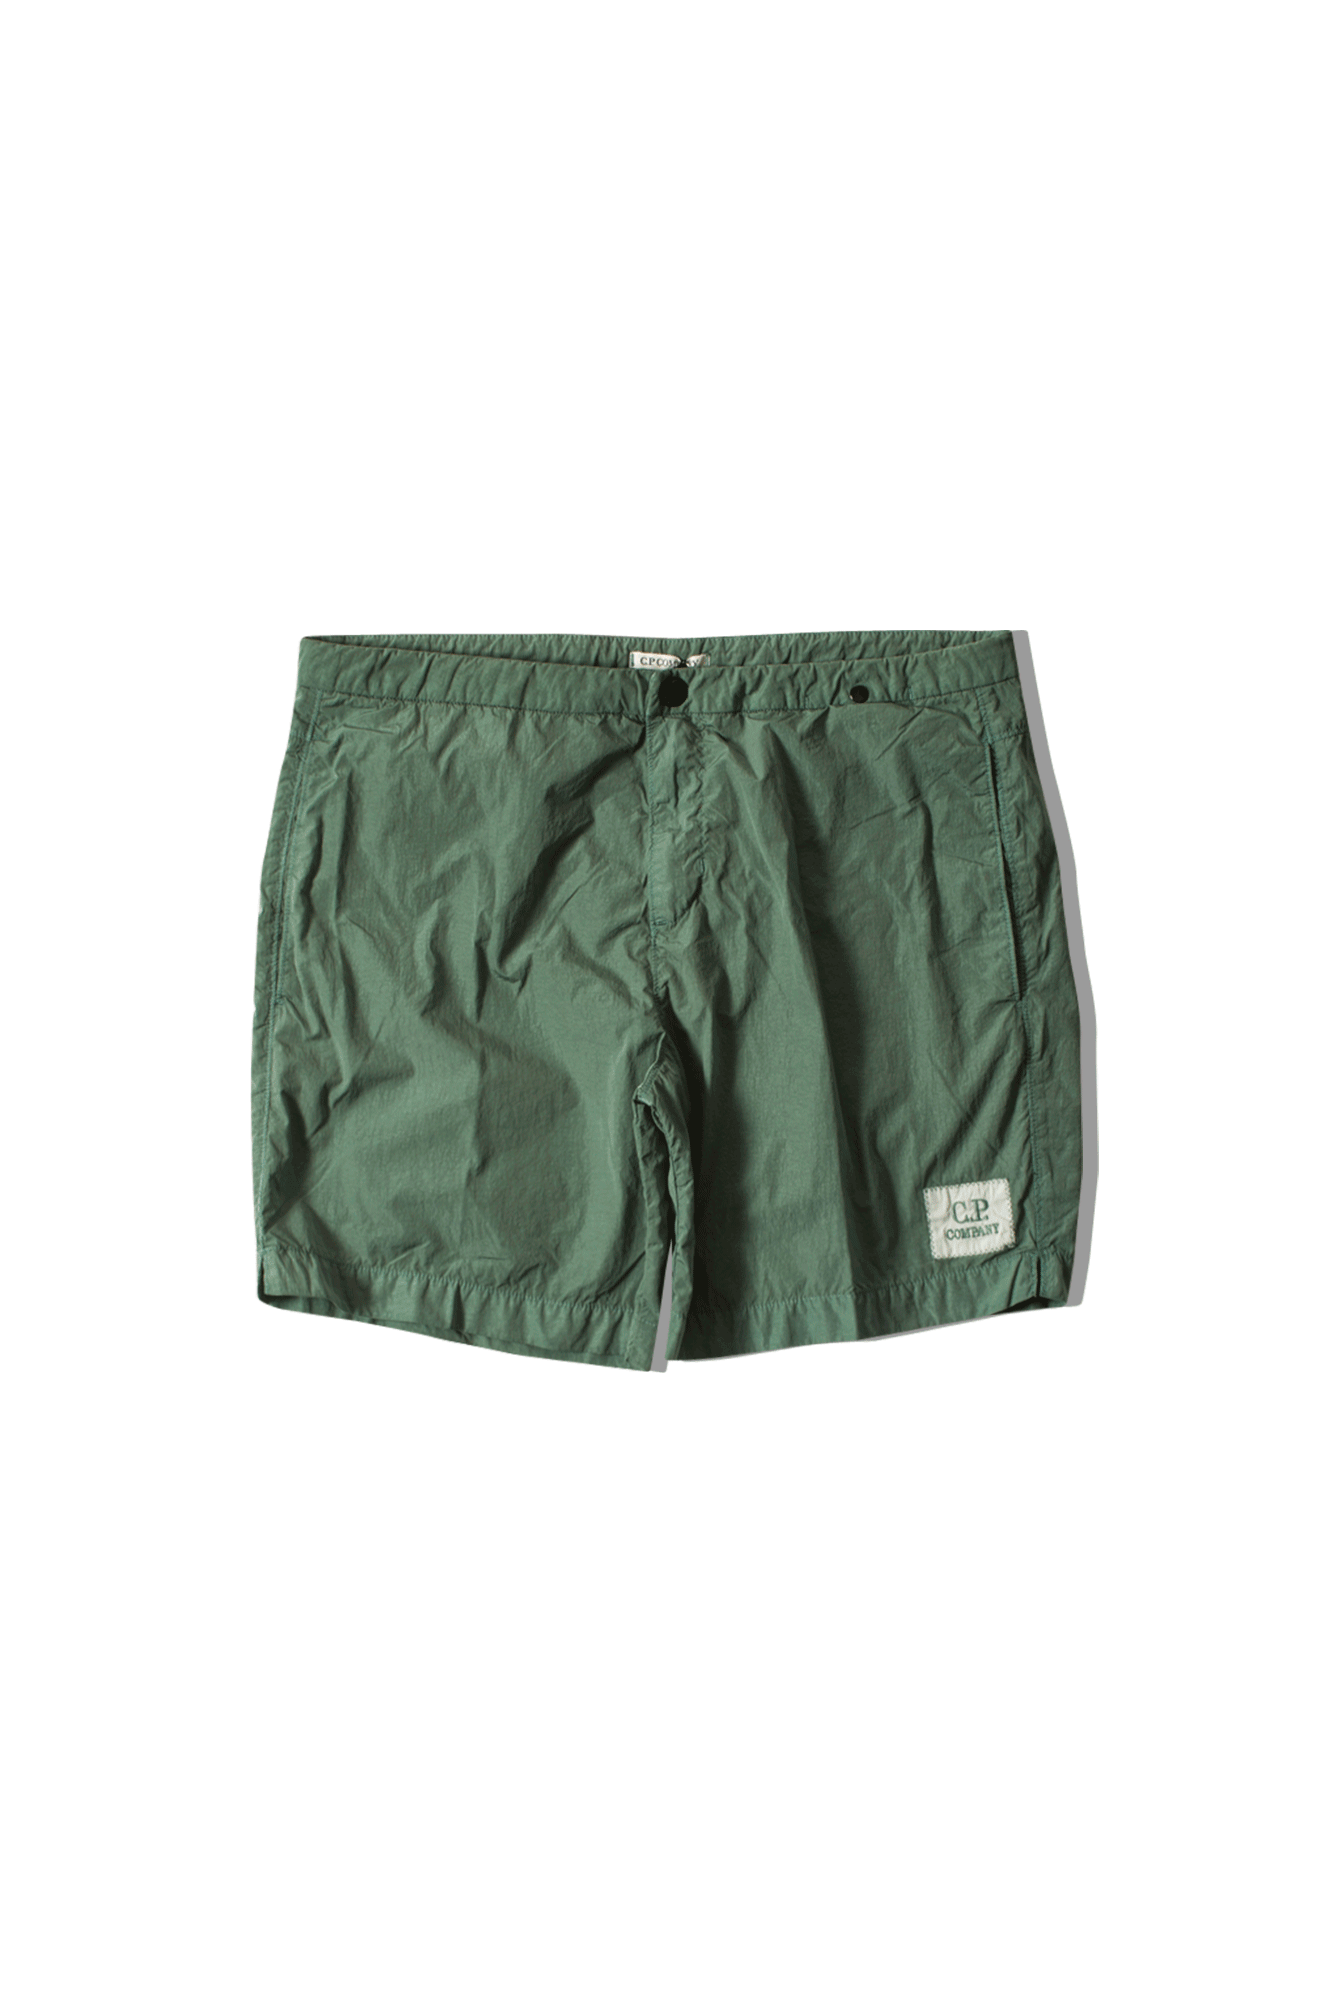 C.P. Company Beachwear Boxer Green 06CMBW163A#000004G#626#44 - One Block Down